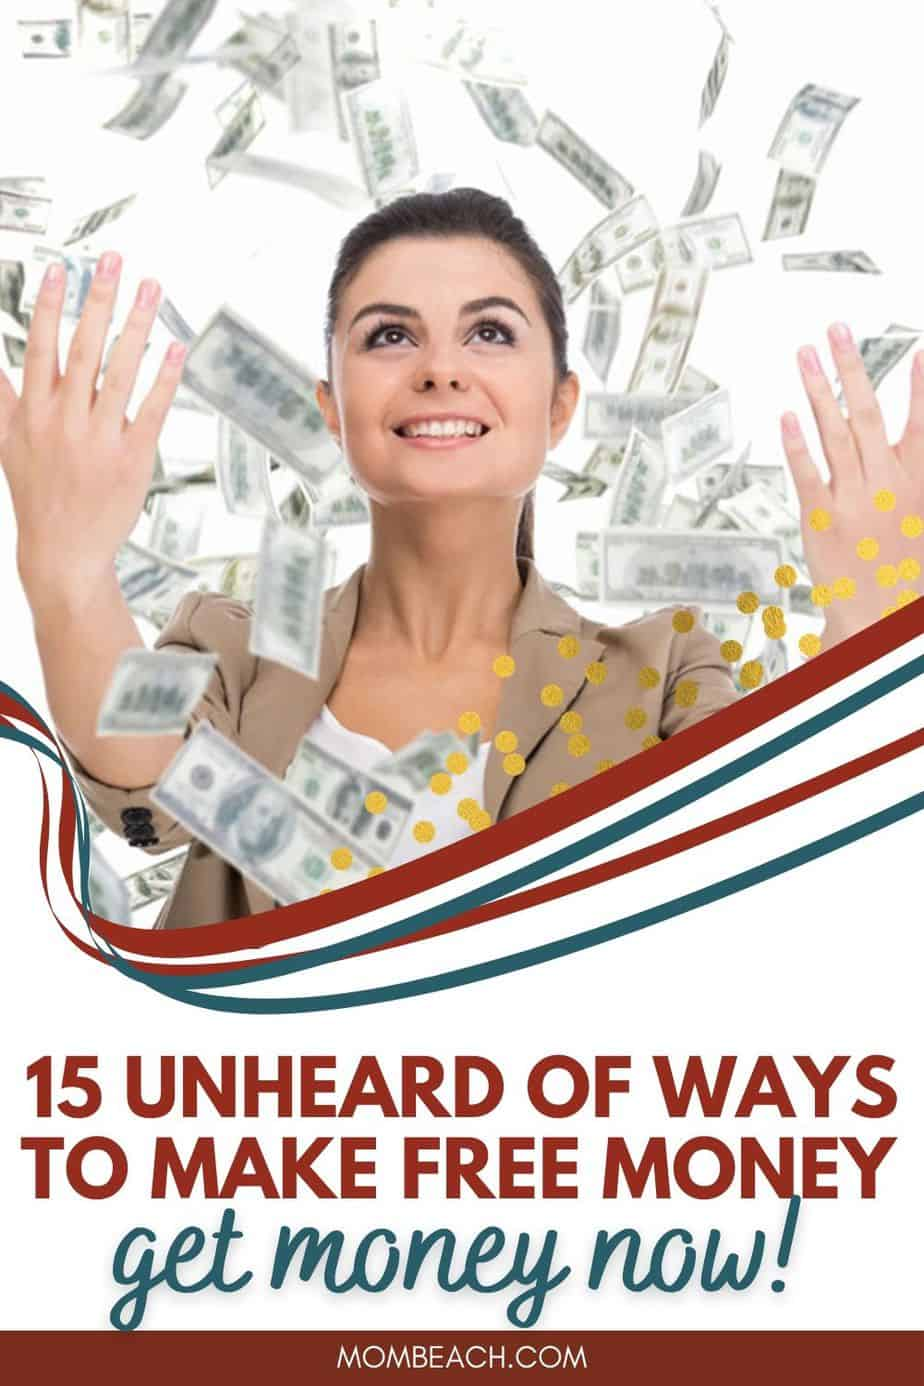 You won't believe these insane unheard of ways to get free money now from cash apps, online, and more FAST! Start getting money in your pocket for free quick. You won't believe our bonus! It's like nothing you ever heard before. Hurry and click this post to get free money. #howtogetfreemoney #freemoney #freemoneyoncashapp #freemoneyfast #howtogetfreemoneyfast #howtogetfreemoneyonpaypal #howtogetfreemoneyforcollege #howtogetfreemoneynow